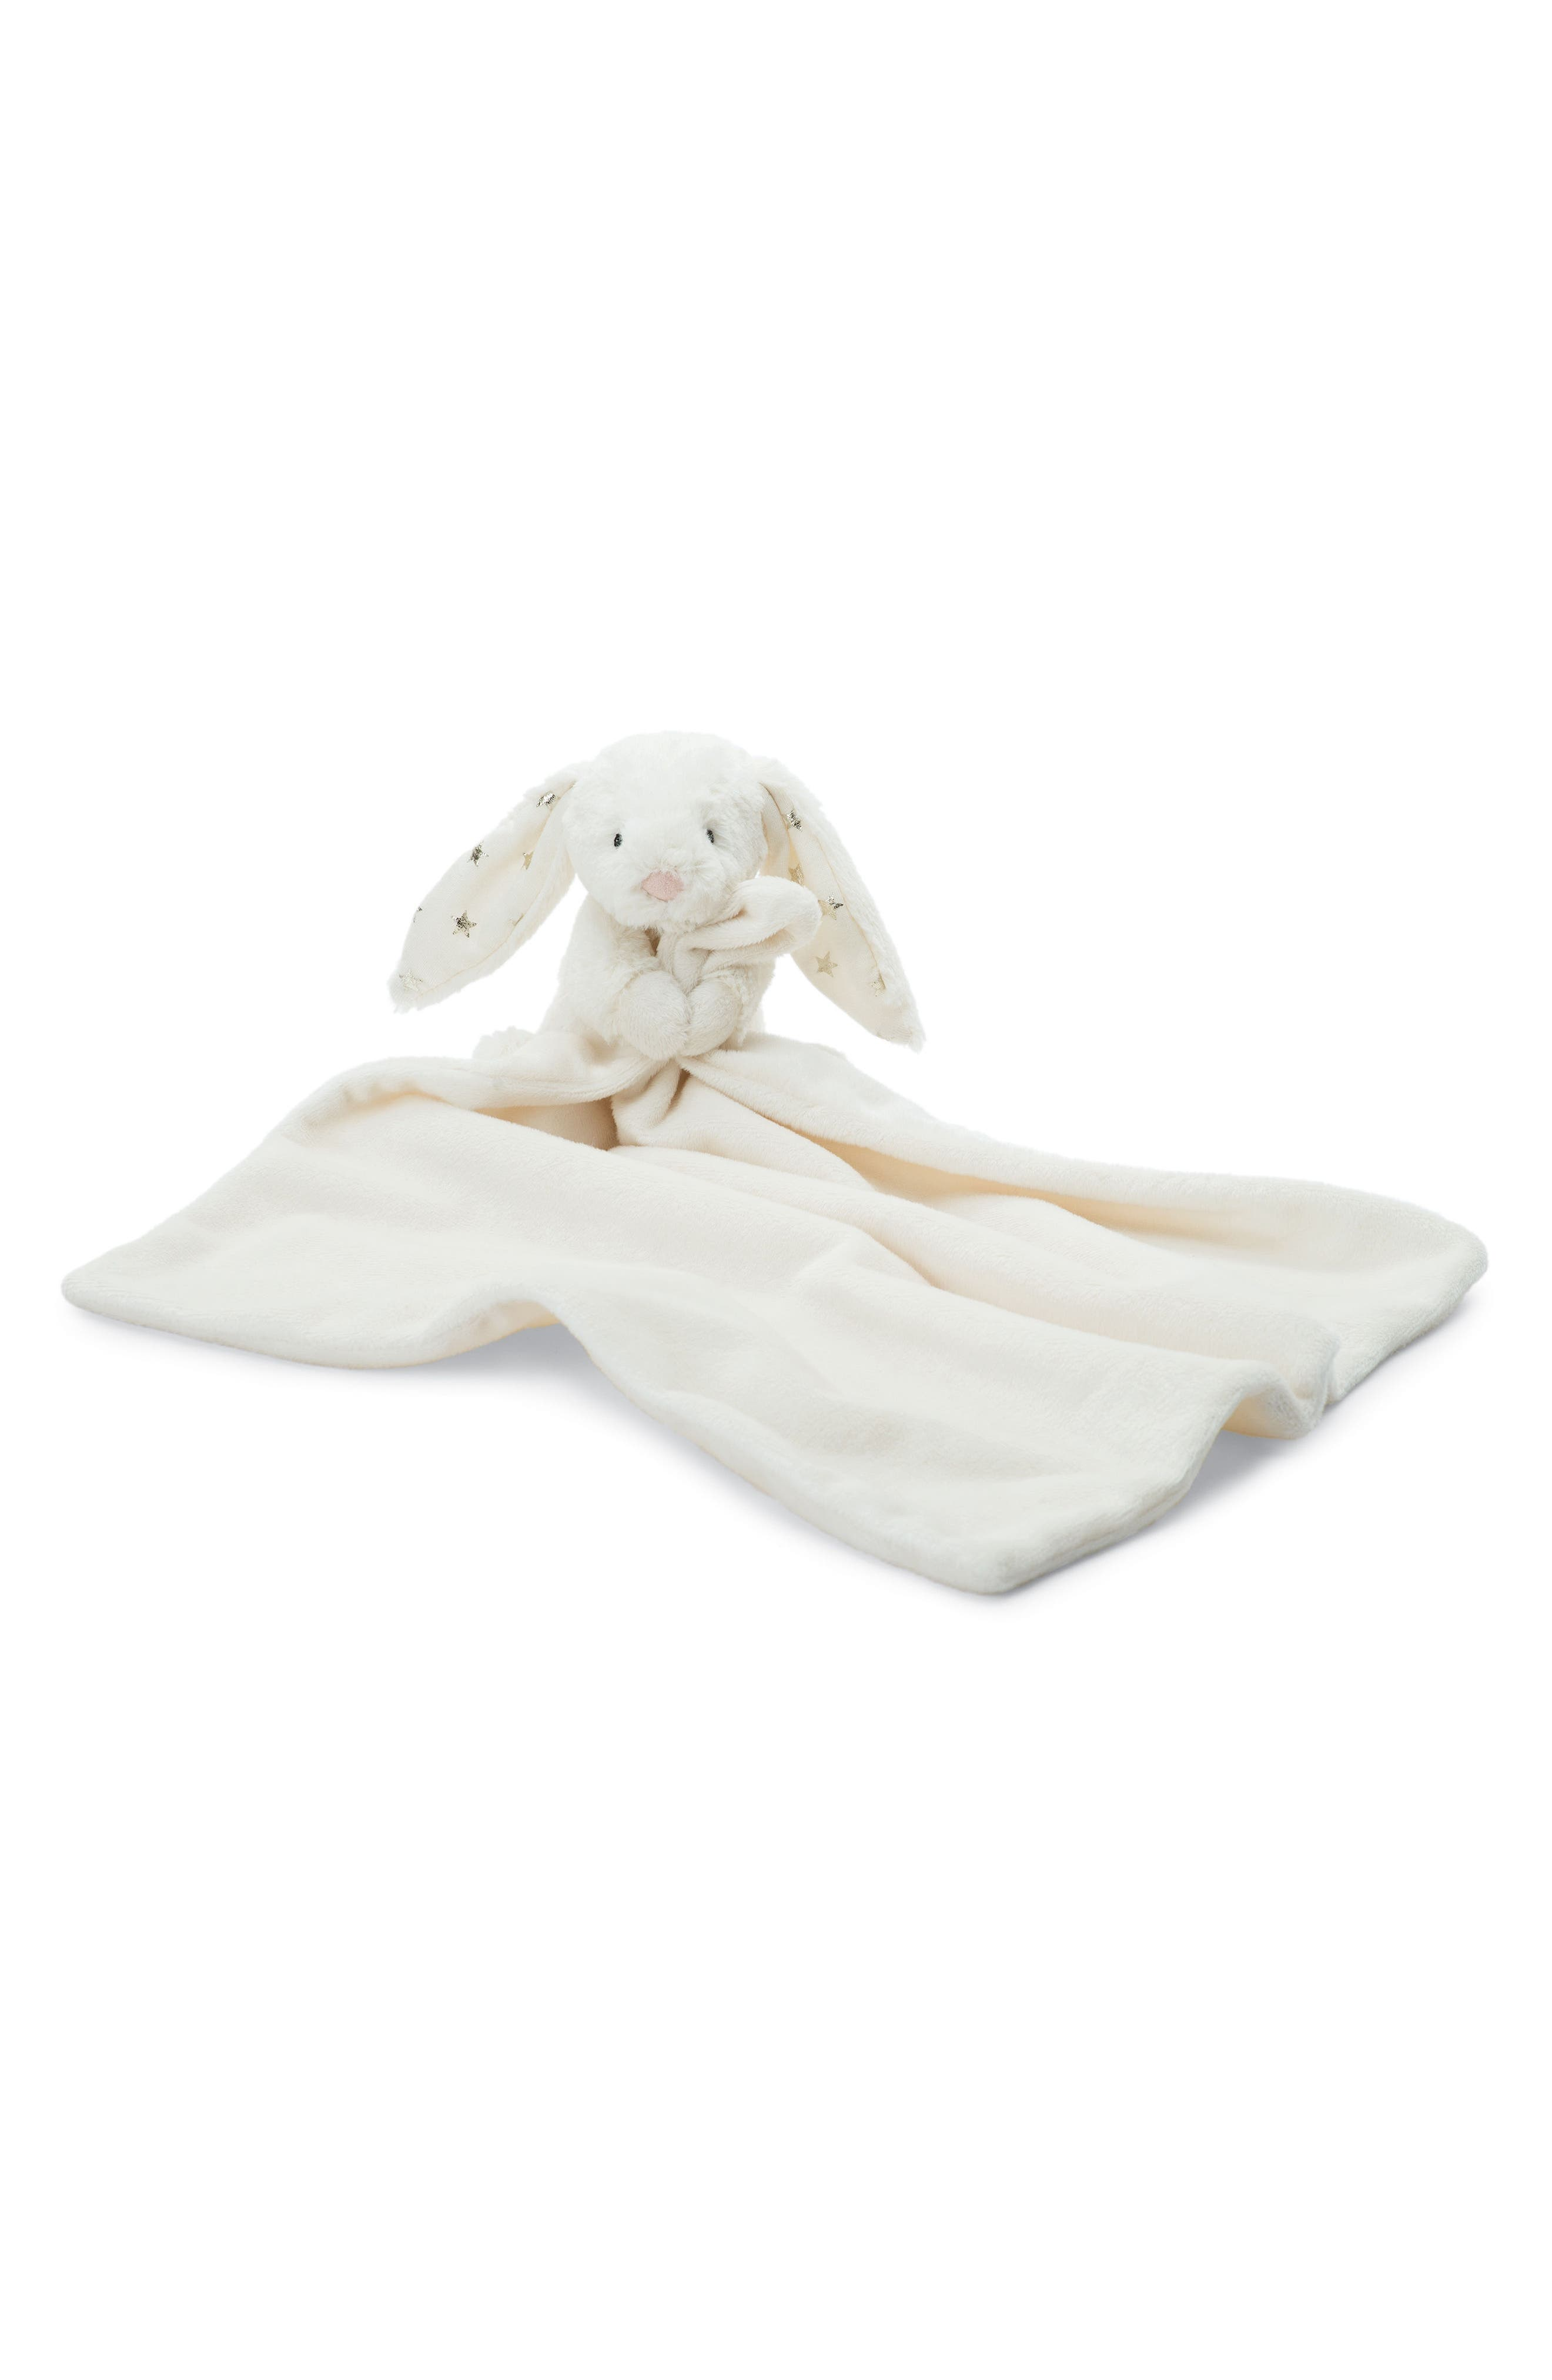 Main Image - Jellycat Twinkle Bunny Soother Blanket